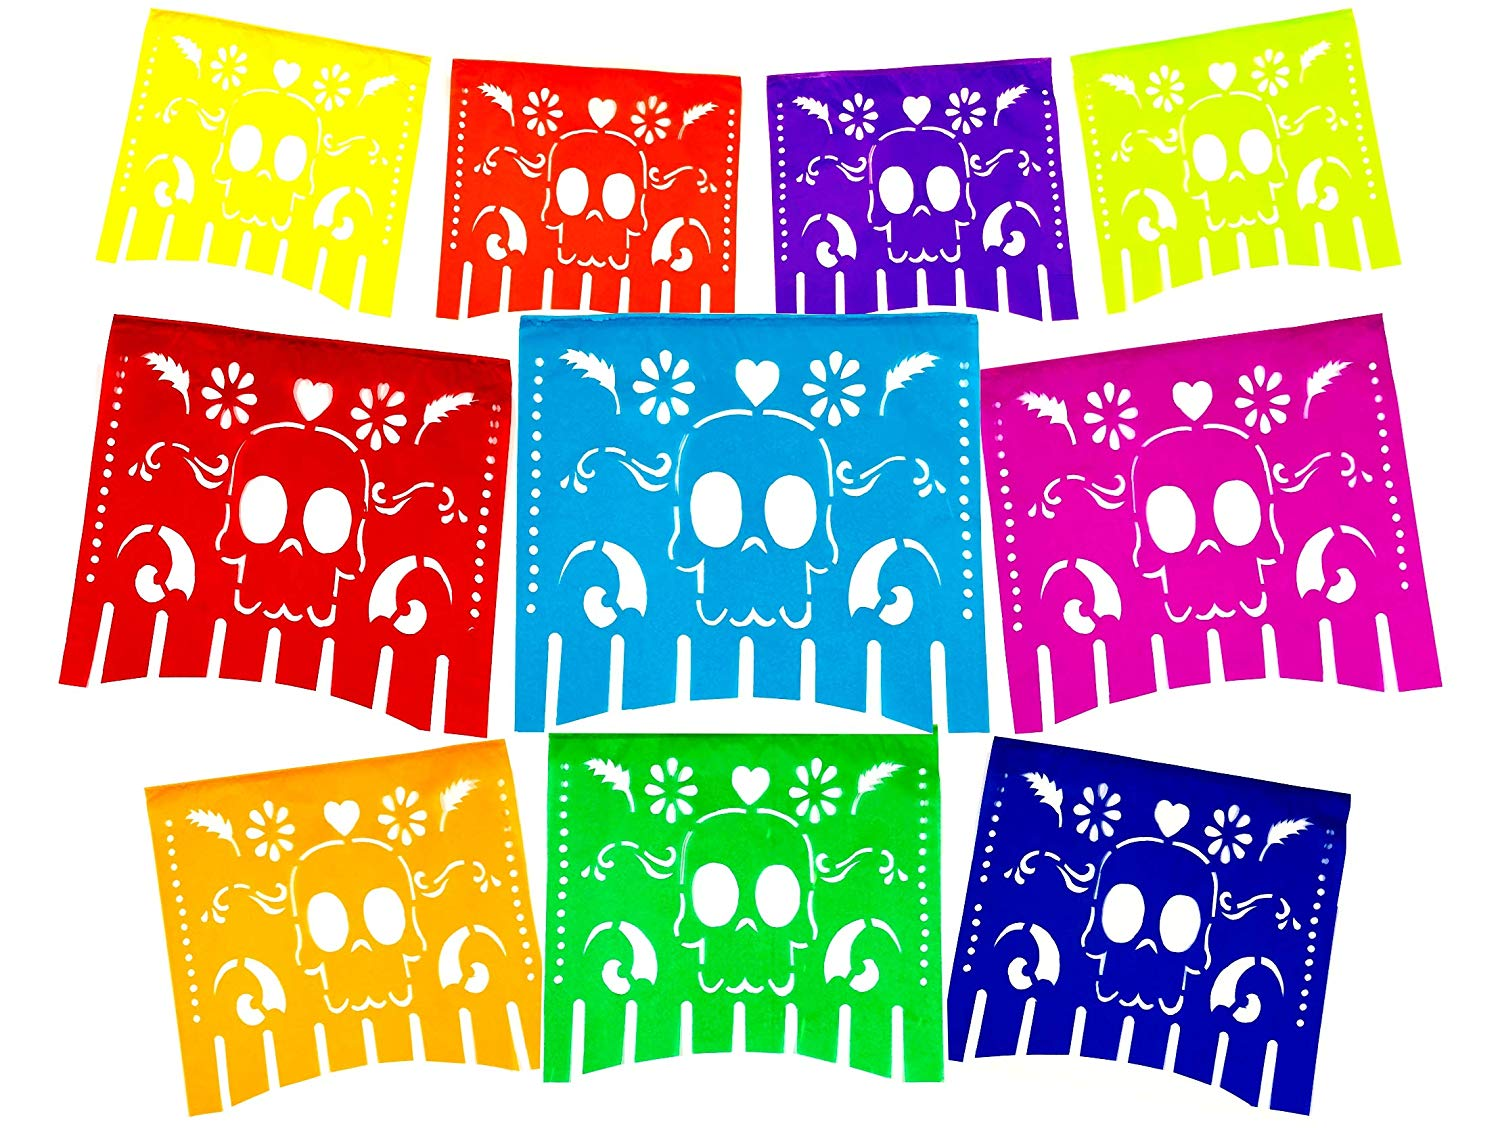 Fiesta Brands Mexican .Colors for The Dead Papel Picado Banner.Vibrant  Colors Tissue Paper. Large Size Panels. Multicolored Dia de Los Muertos  Sugar.